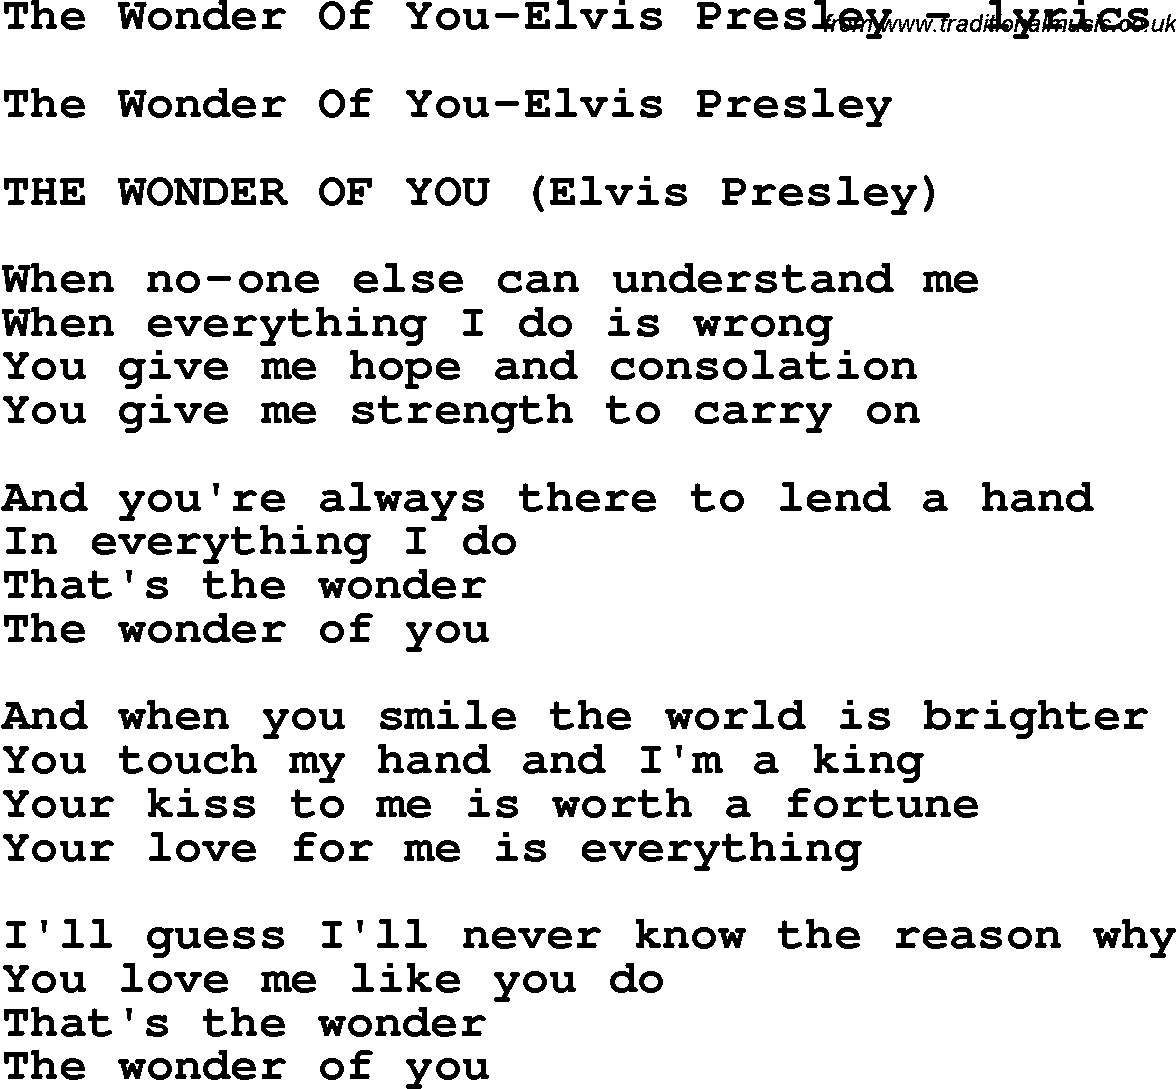 Download The Wonder Of You-Elvis Presley as PDF file (For printing etc